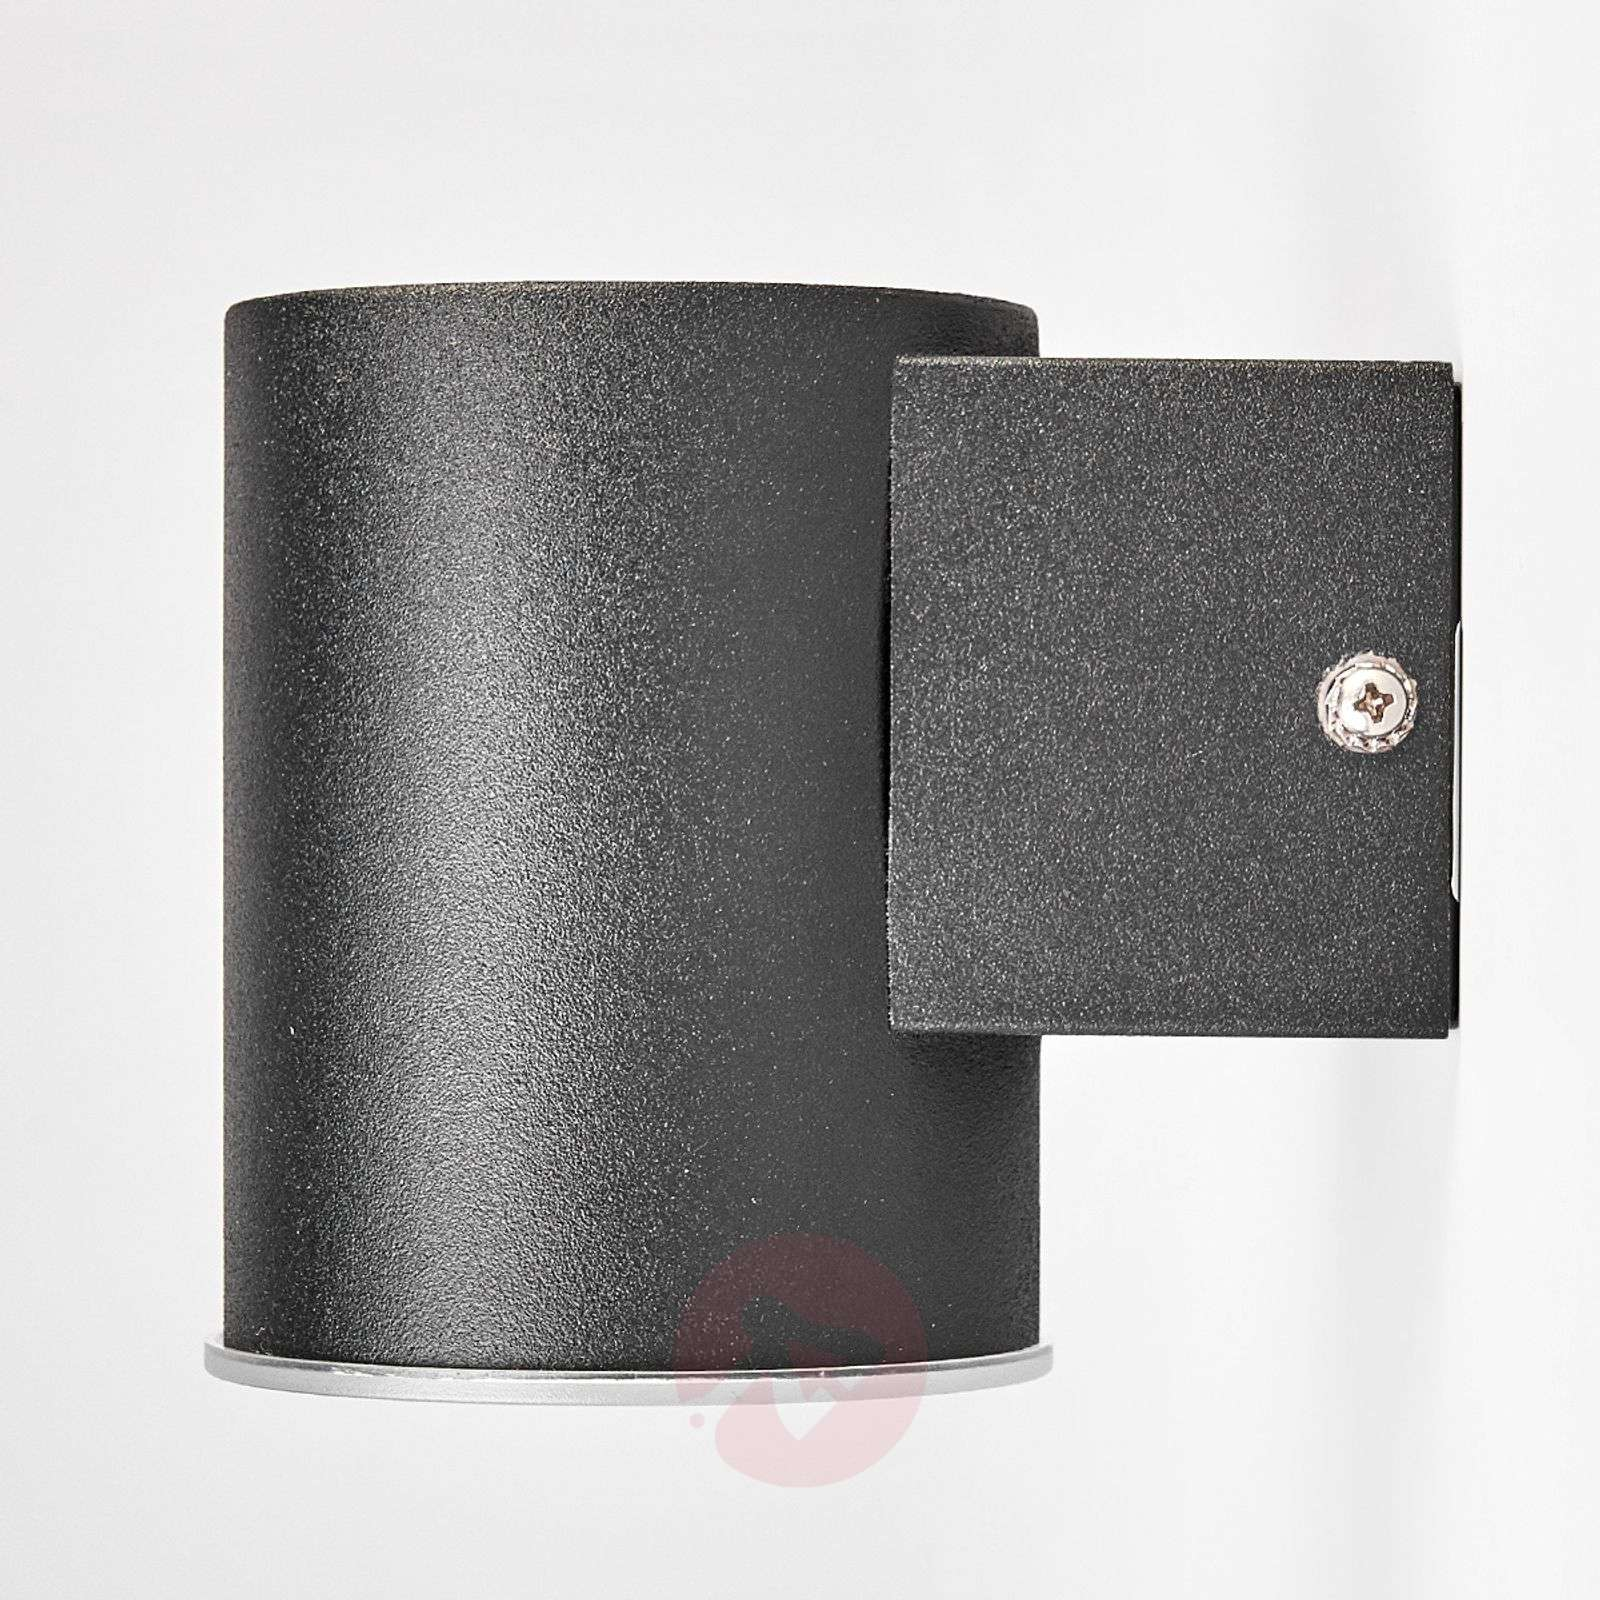 Sleek Morena LED outdoor wall lamp in black-9988057-01